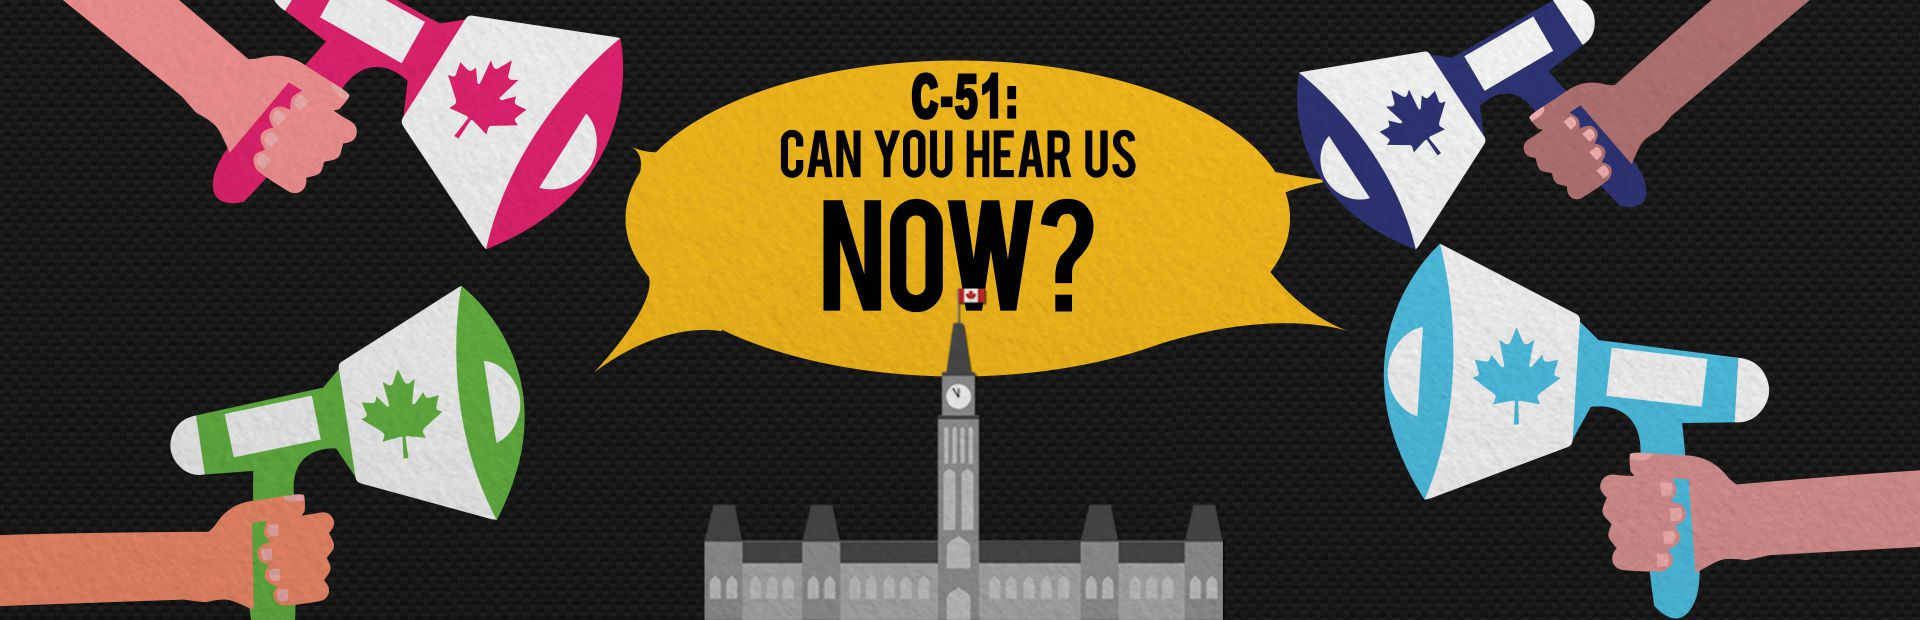 Demand a real, public consultation that will let us Kill Bill C-51